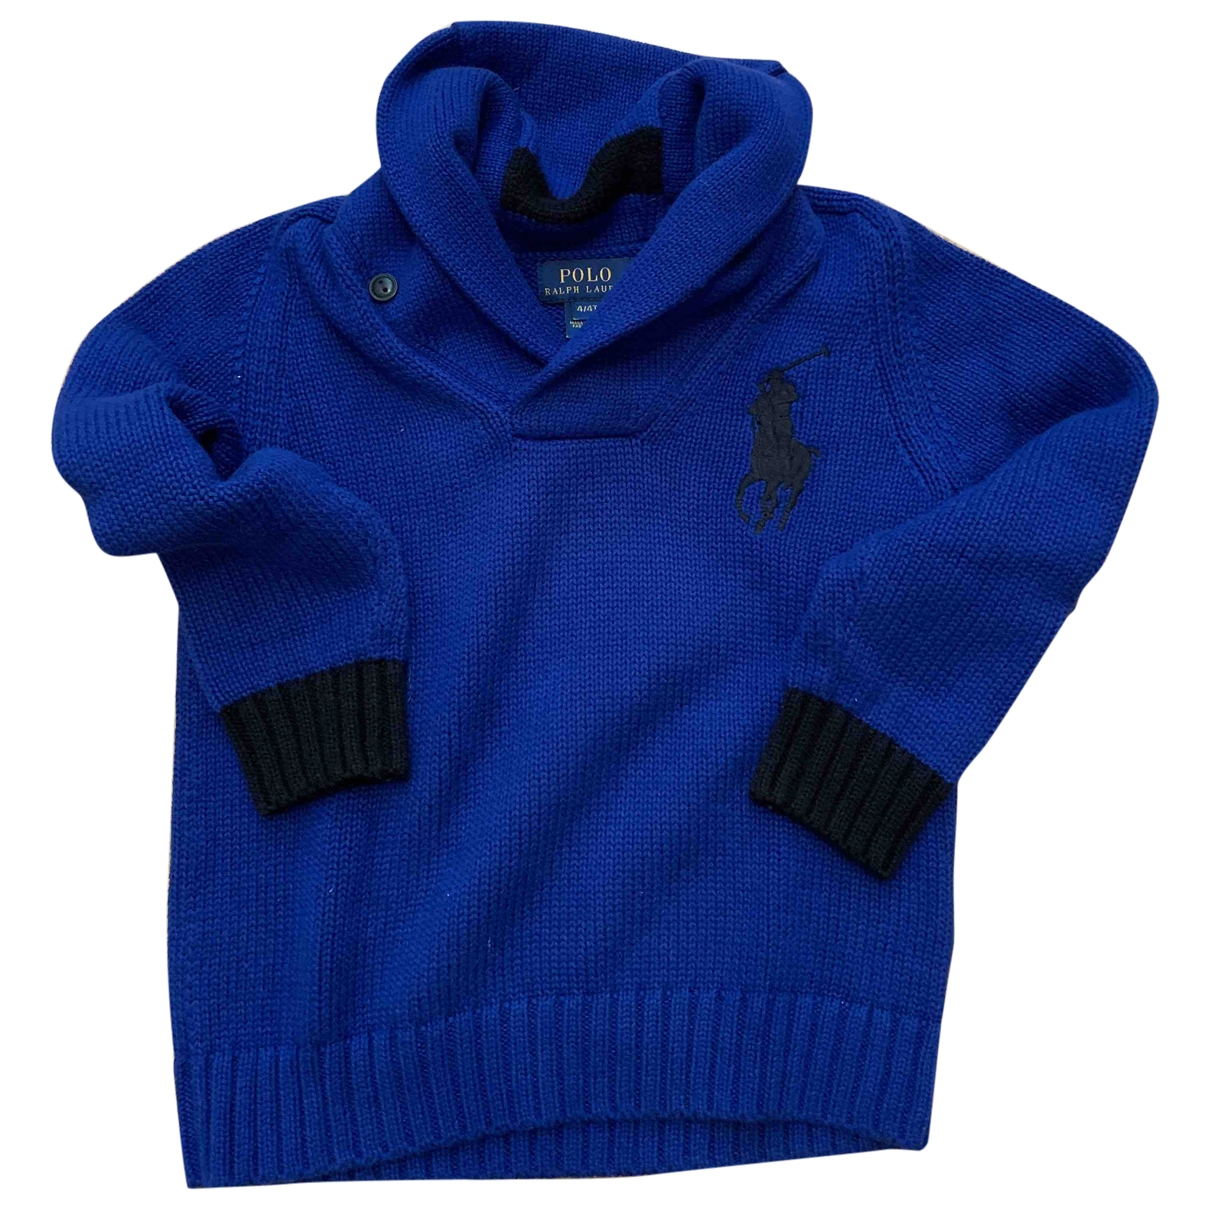 Polo Ralph Lauren \N Blue Cotton Knitwear for Kids 4 years - until 40 inches UK